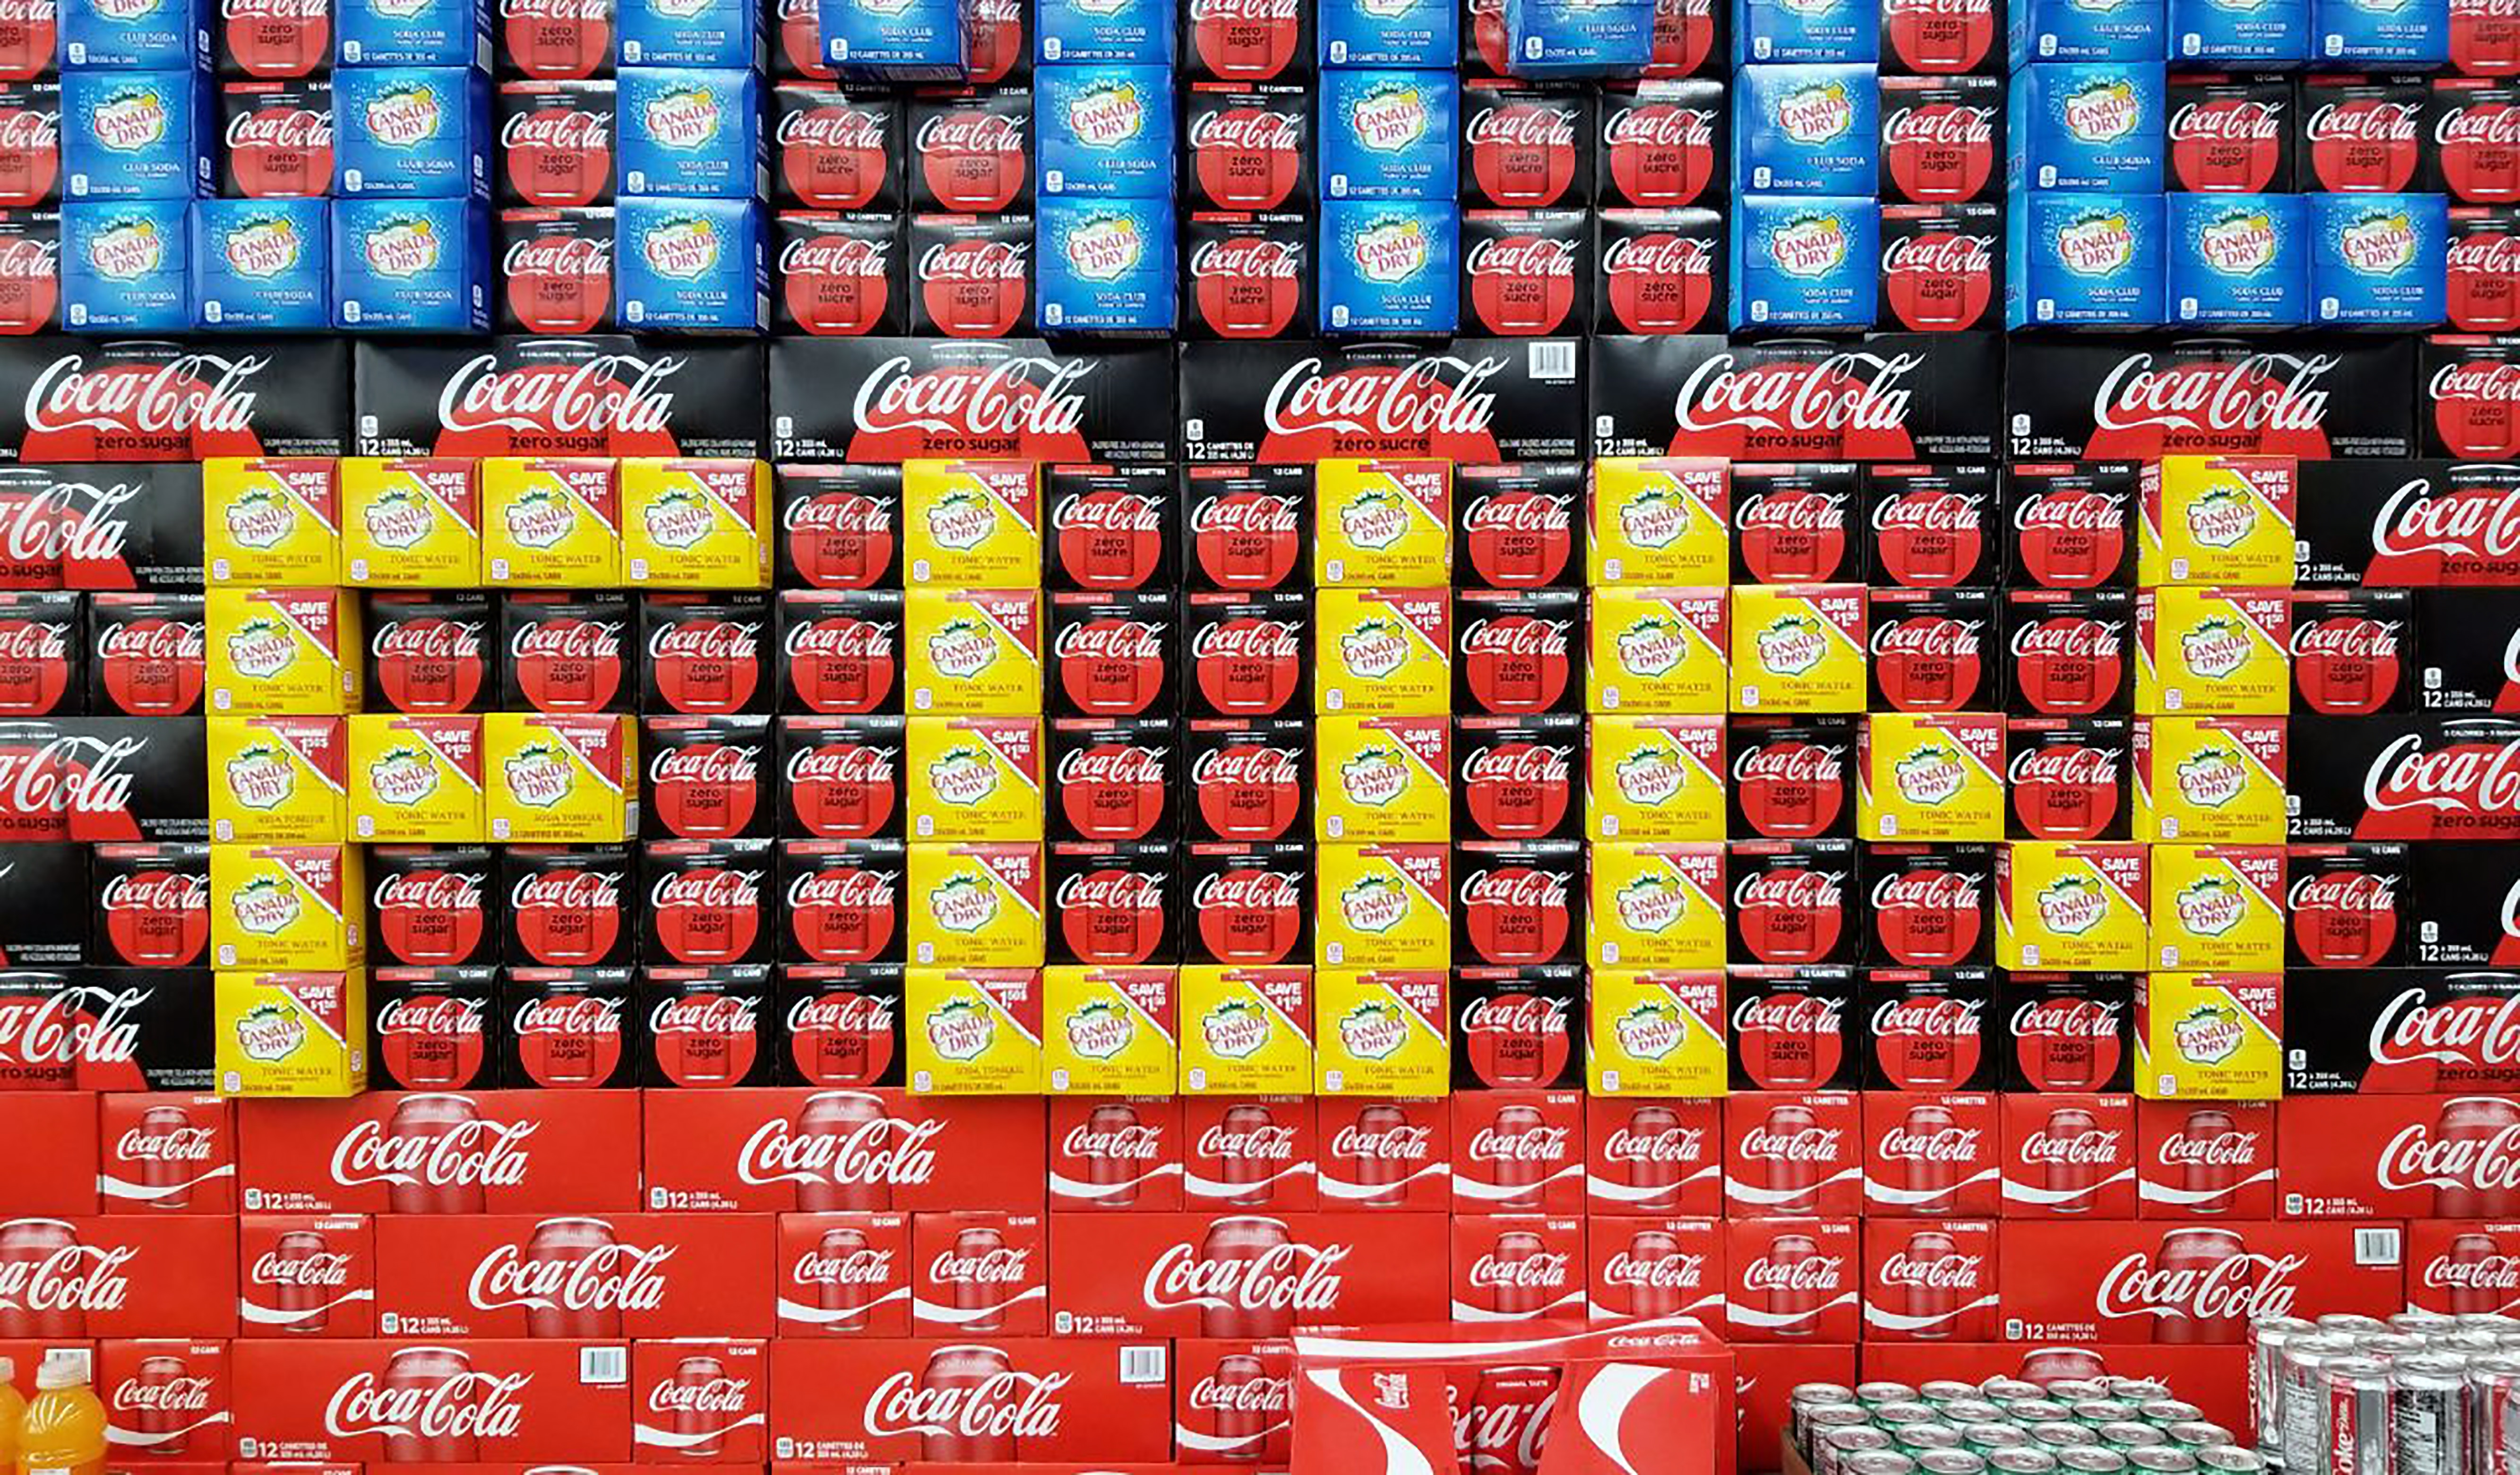 The Coca Cola Supply Chain & Manufacturing Process Explained